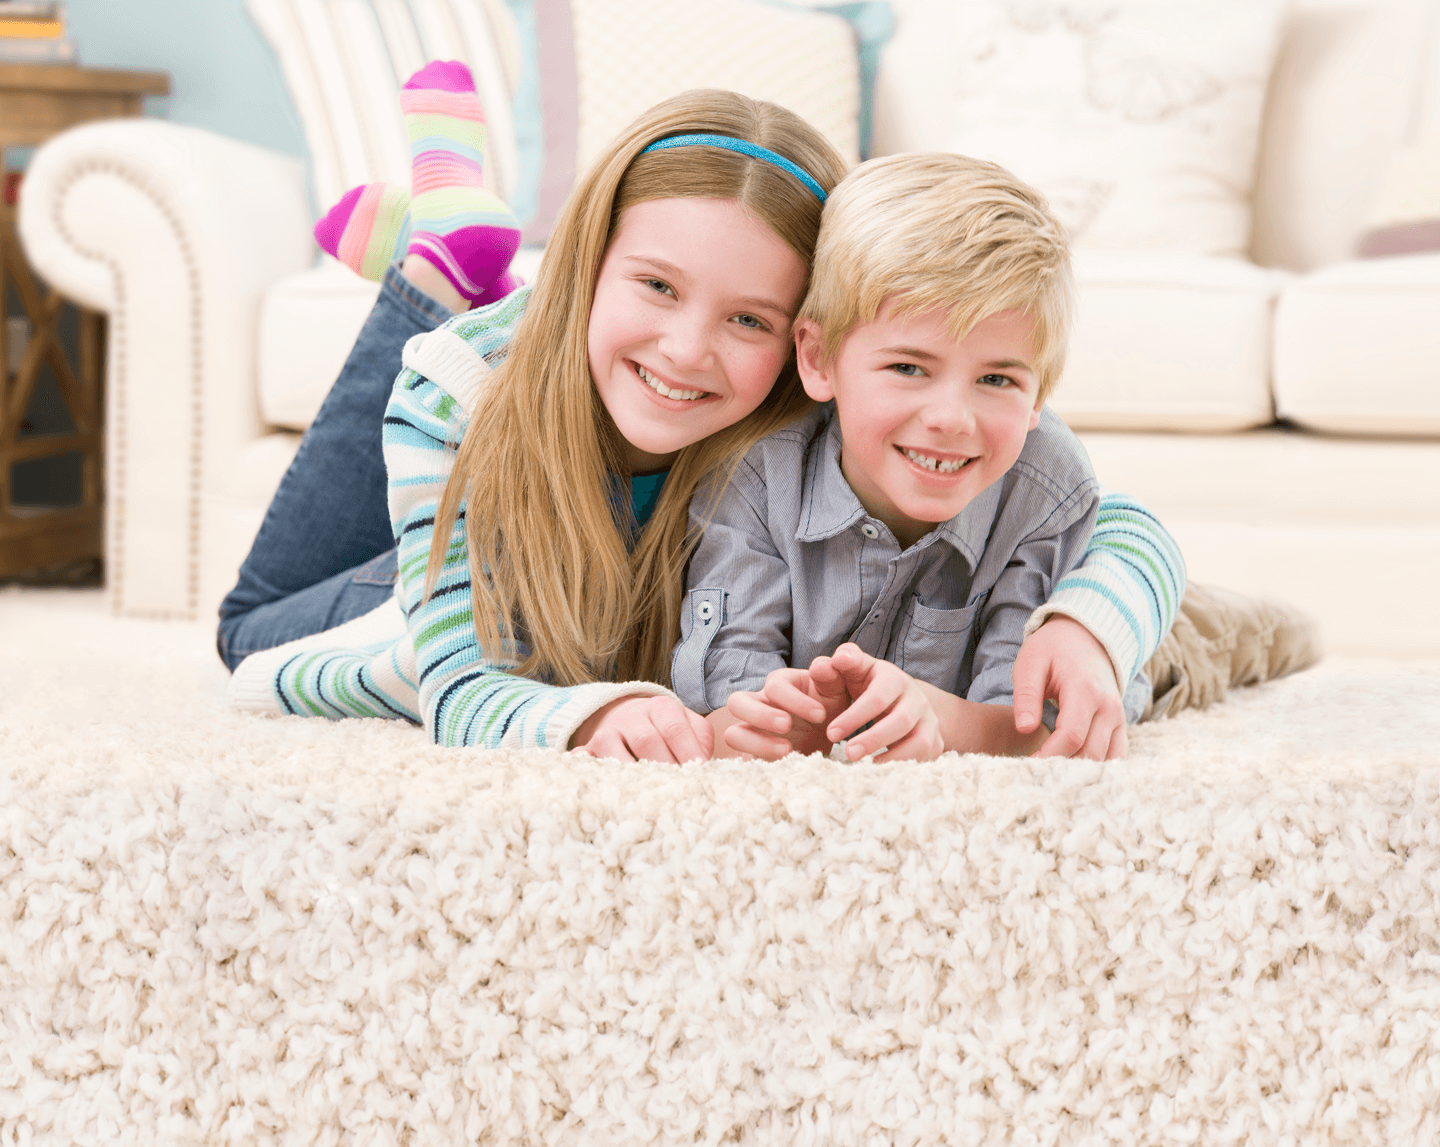 girl and boy laying on carpet together in reno nevada